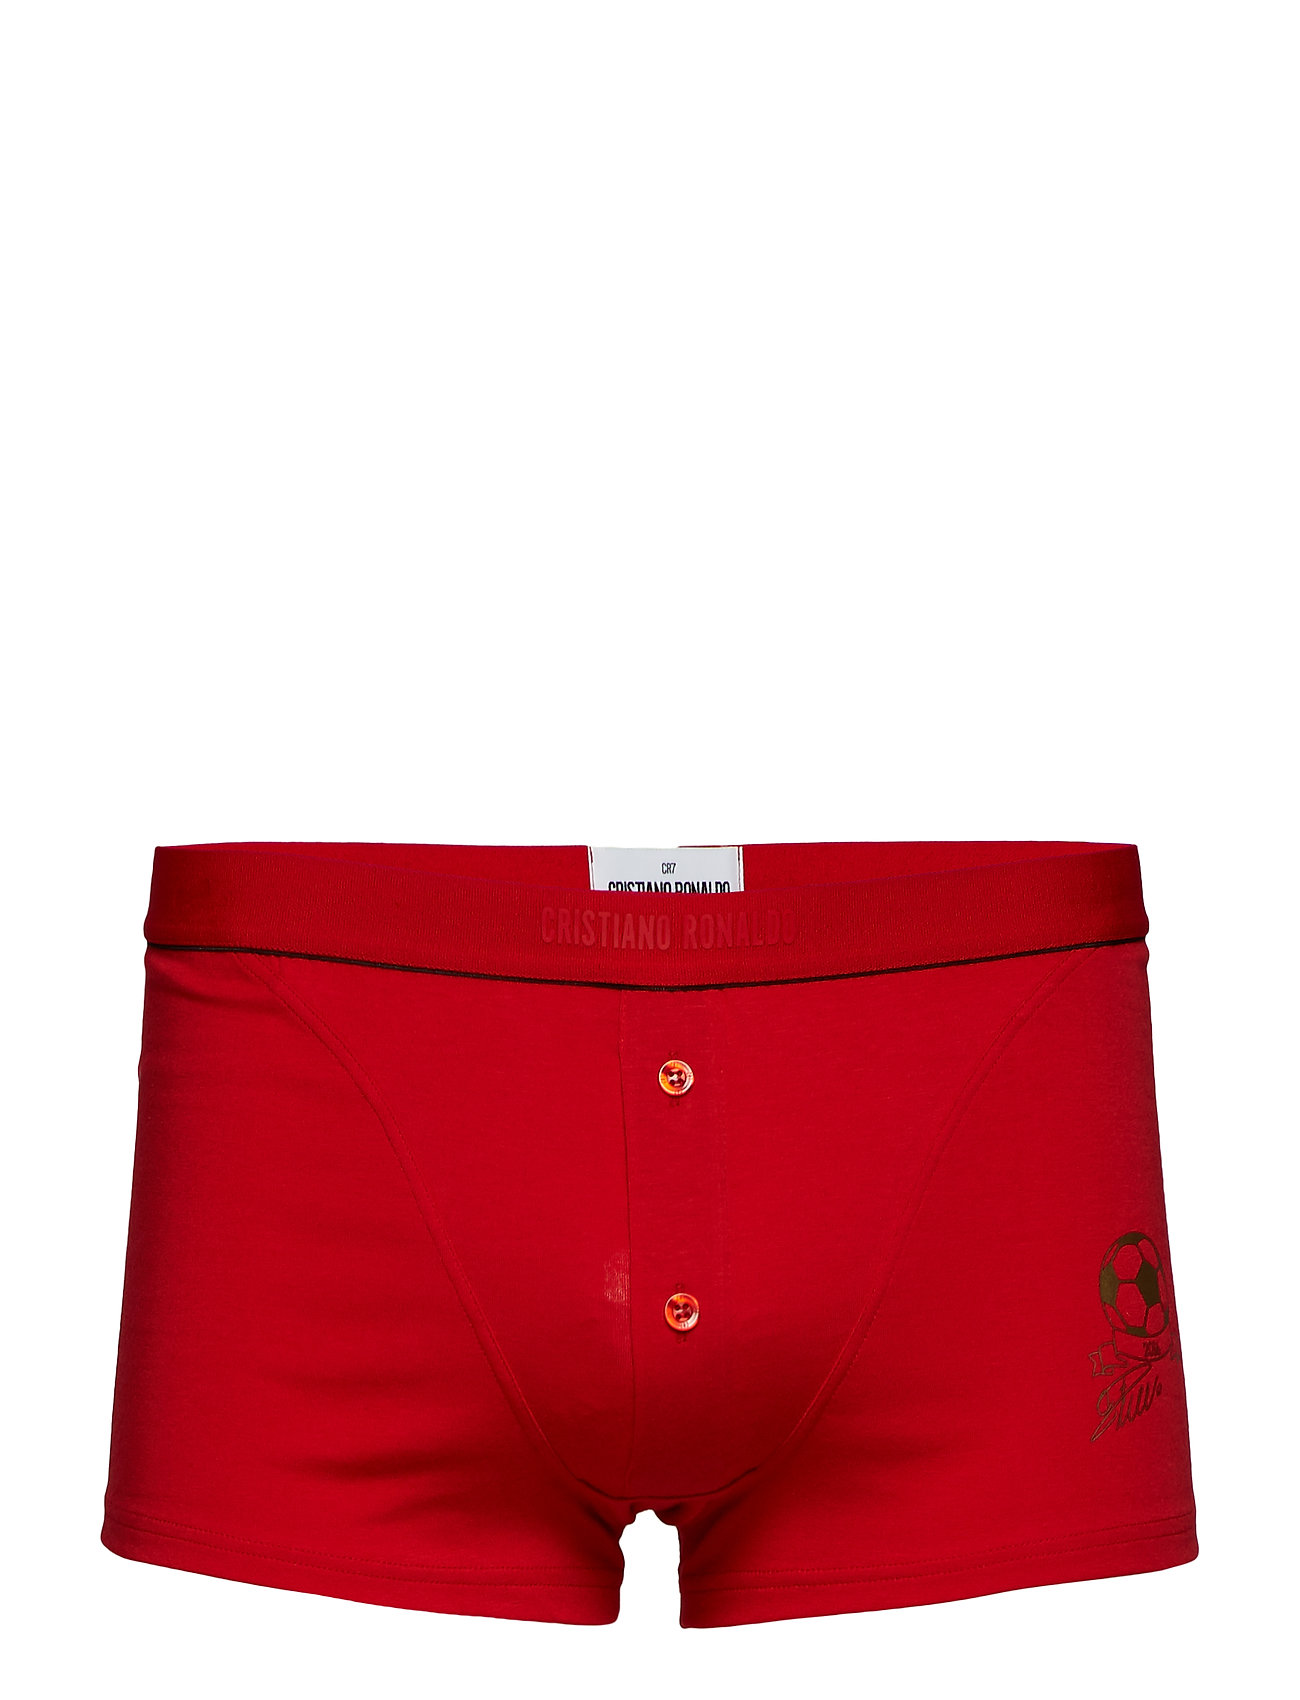 CR7 CR7 Luxury Trunk with buttons - RED GOLD